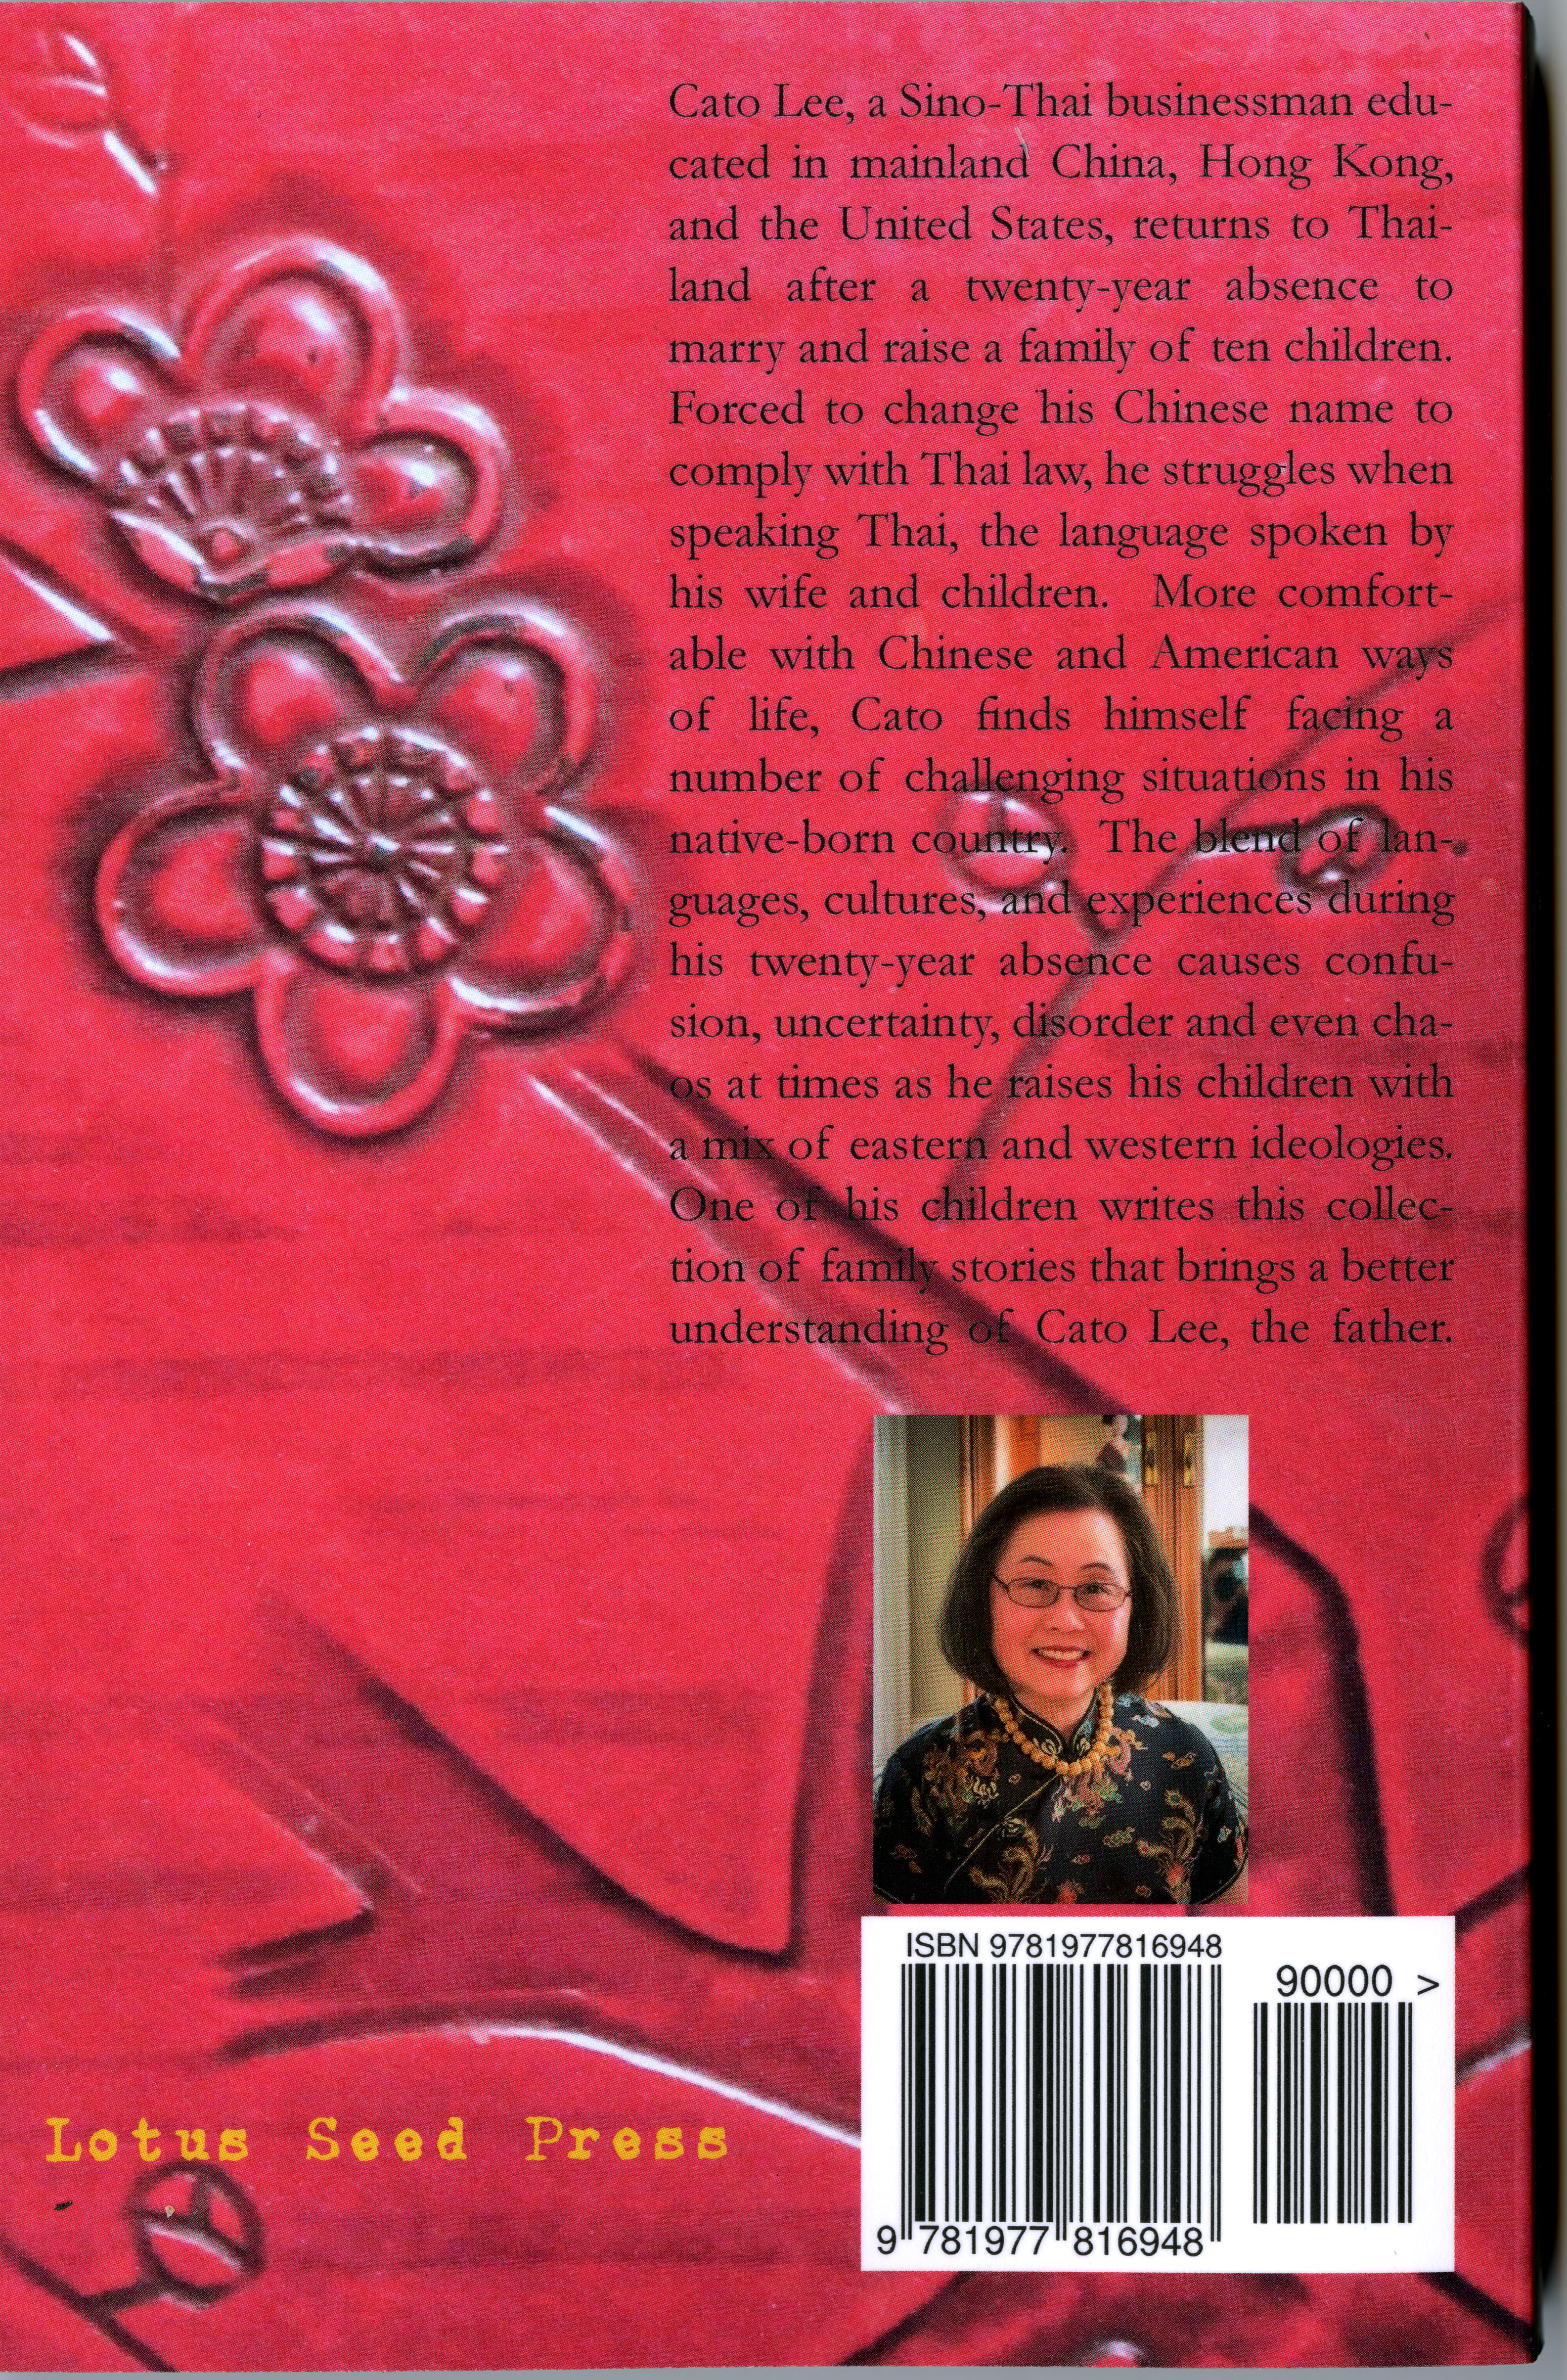 Text about the book and small image of the author on the back cover